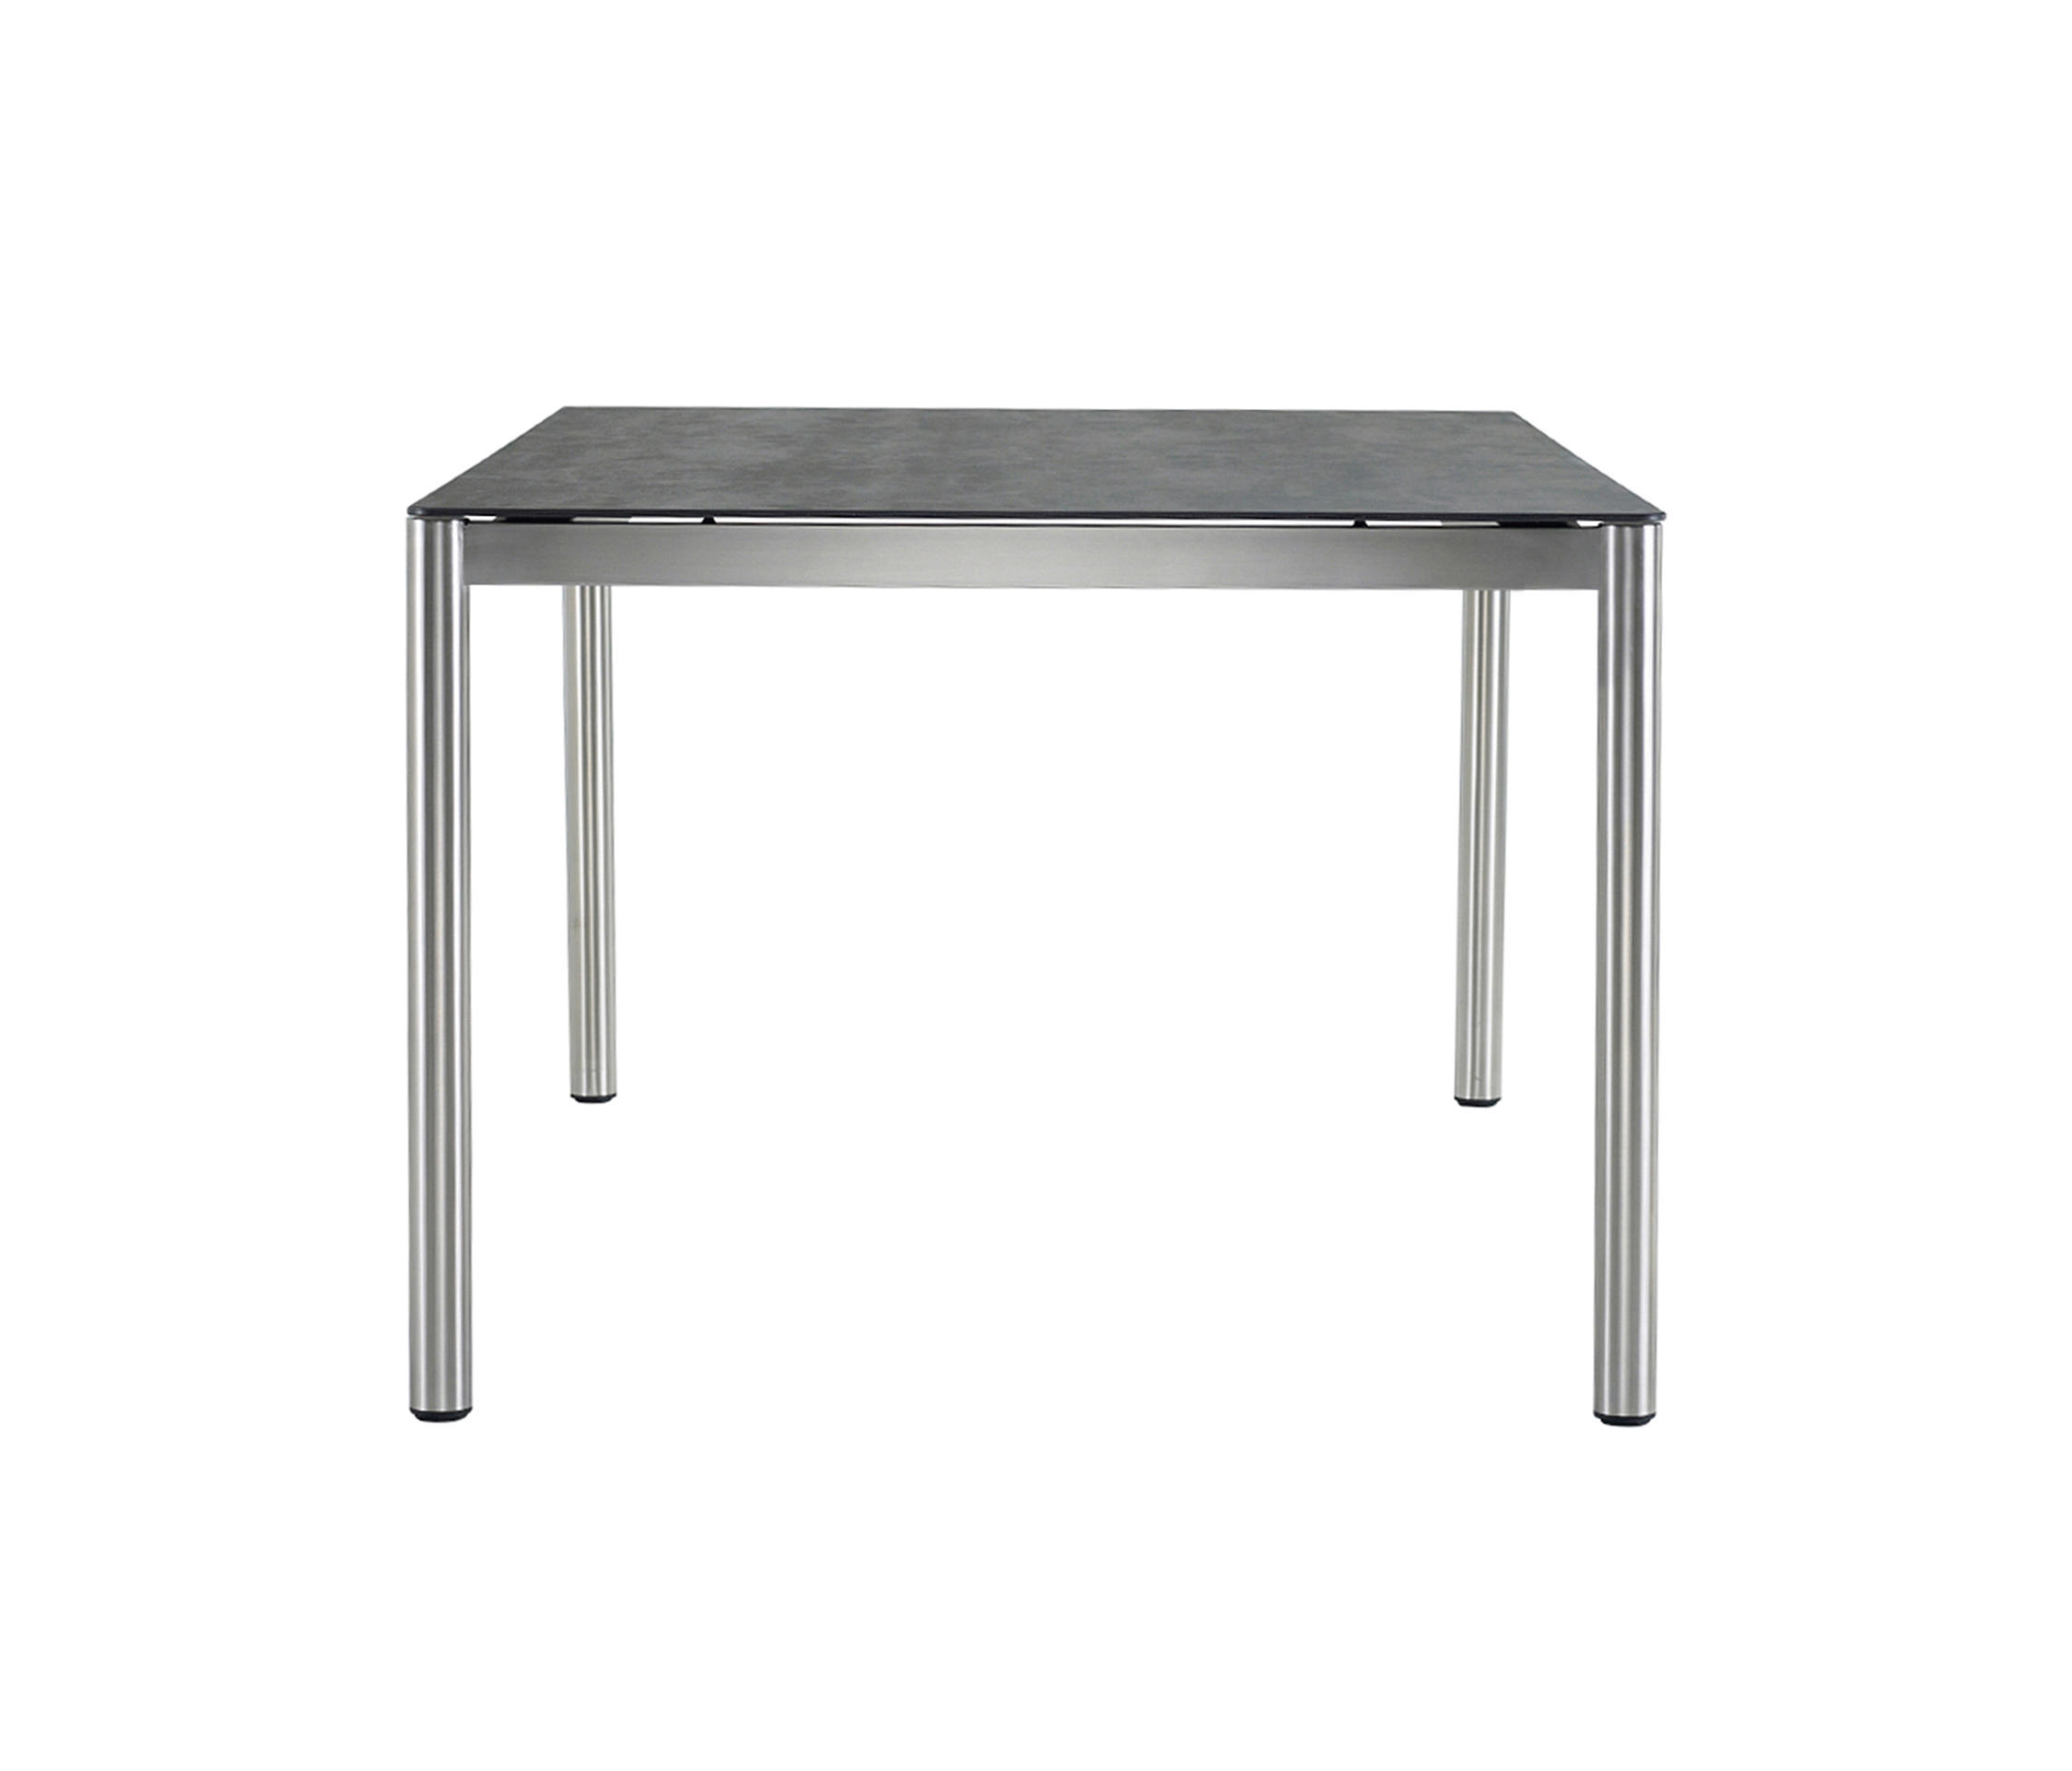 Trend Dining Table By Solpuri | Dining Tables ...